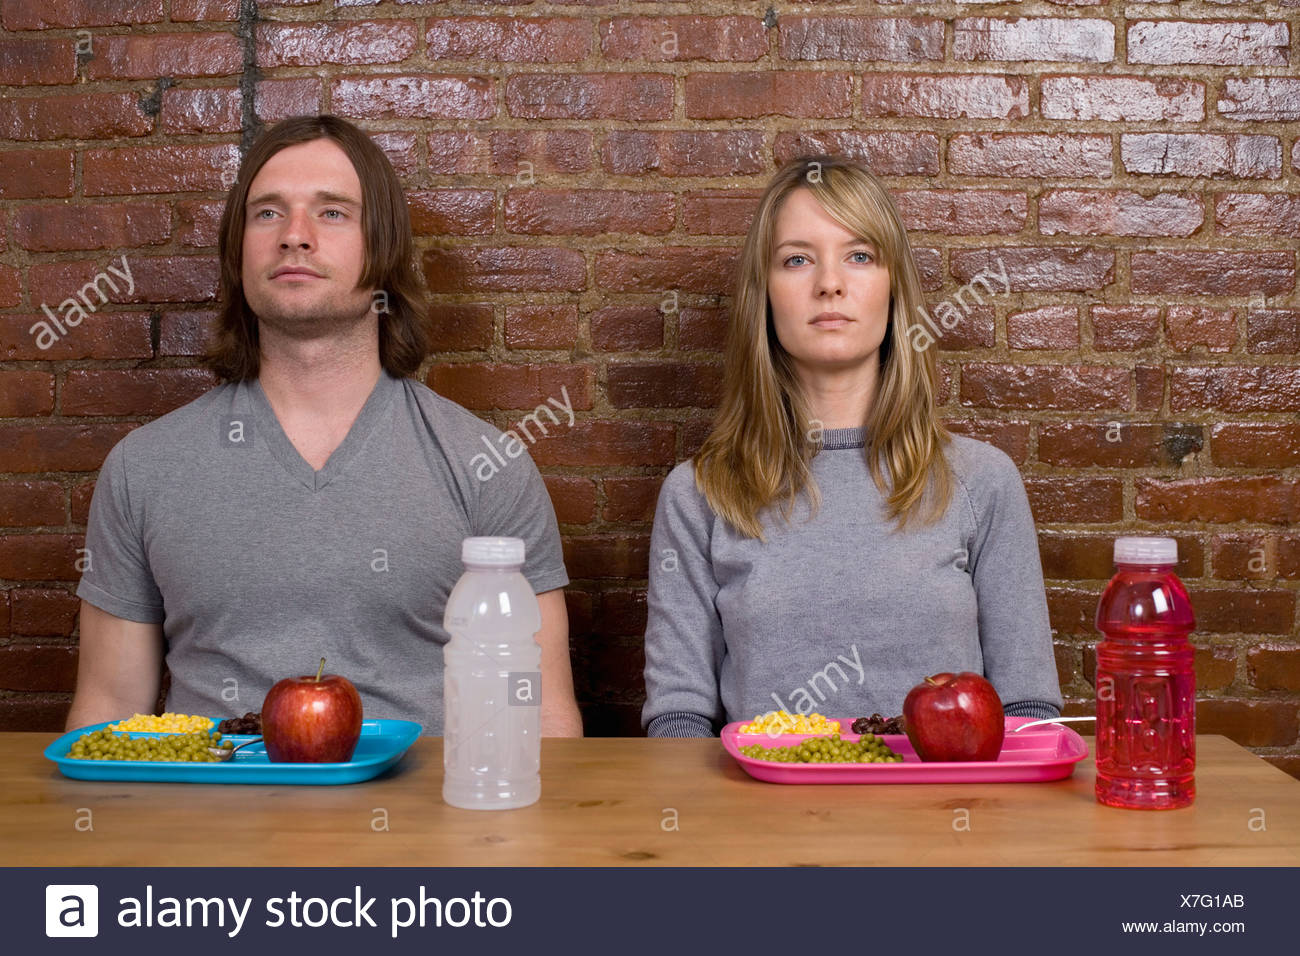 A young couple sitting at a table with sports drinks and plastic trays of food - Stock Image